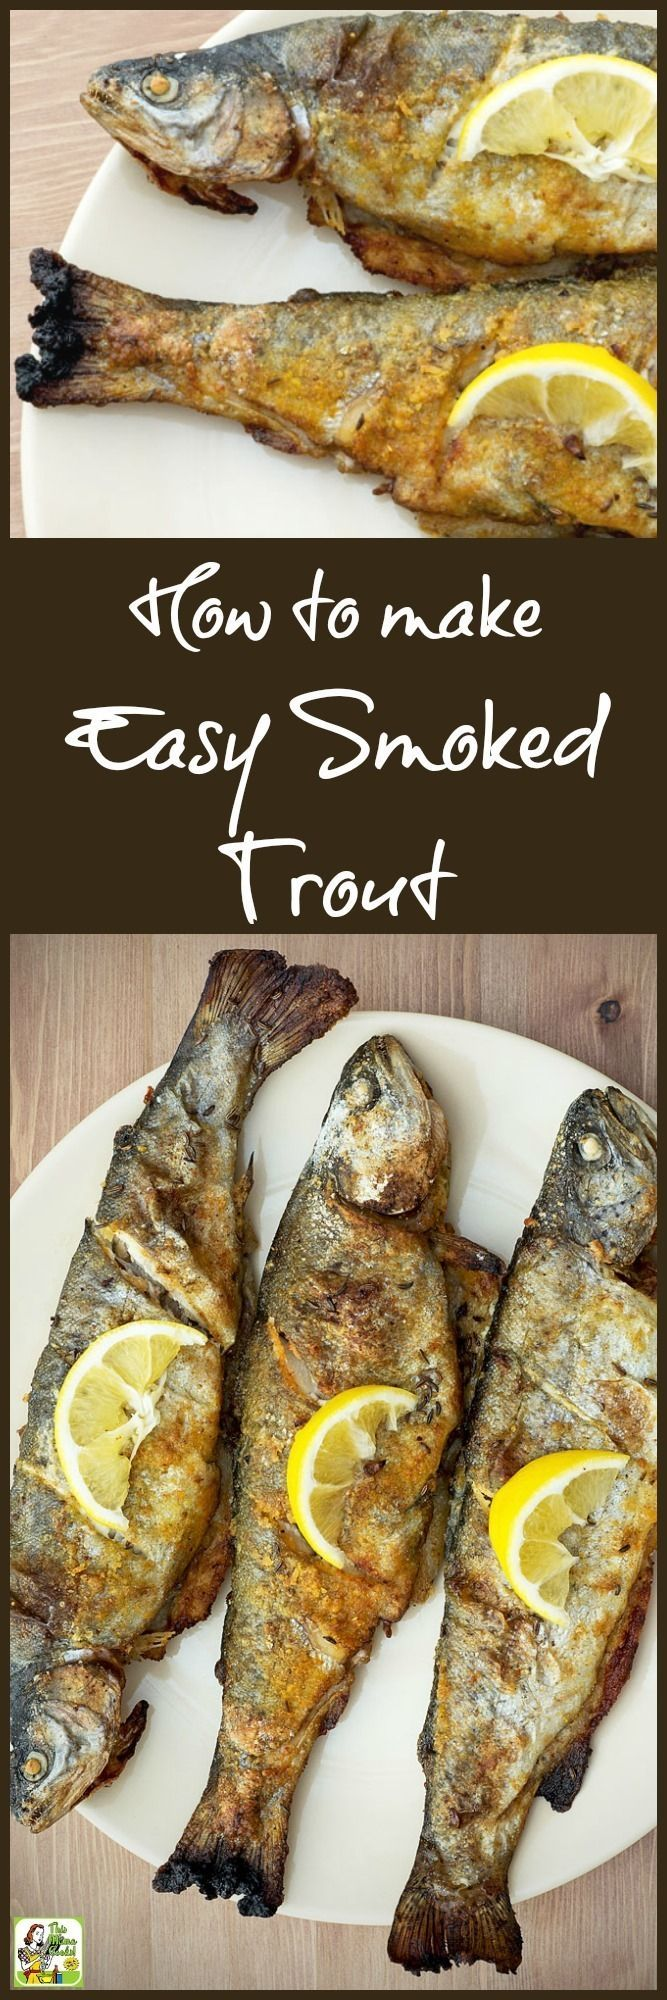 100 electric smoker recipes on pinterest electric meat for Smoking fish electric smoker